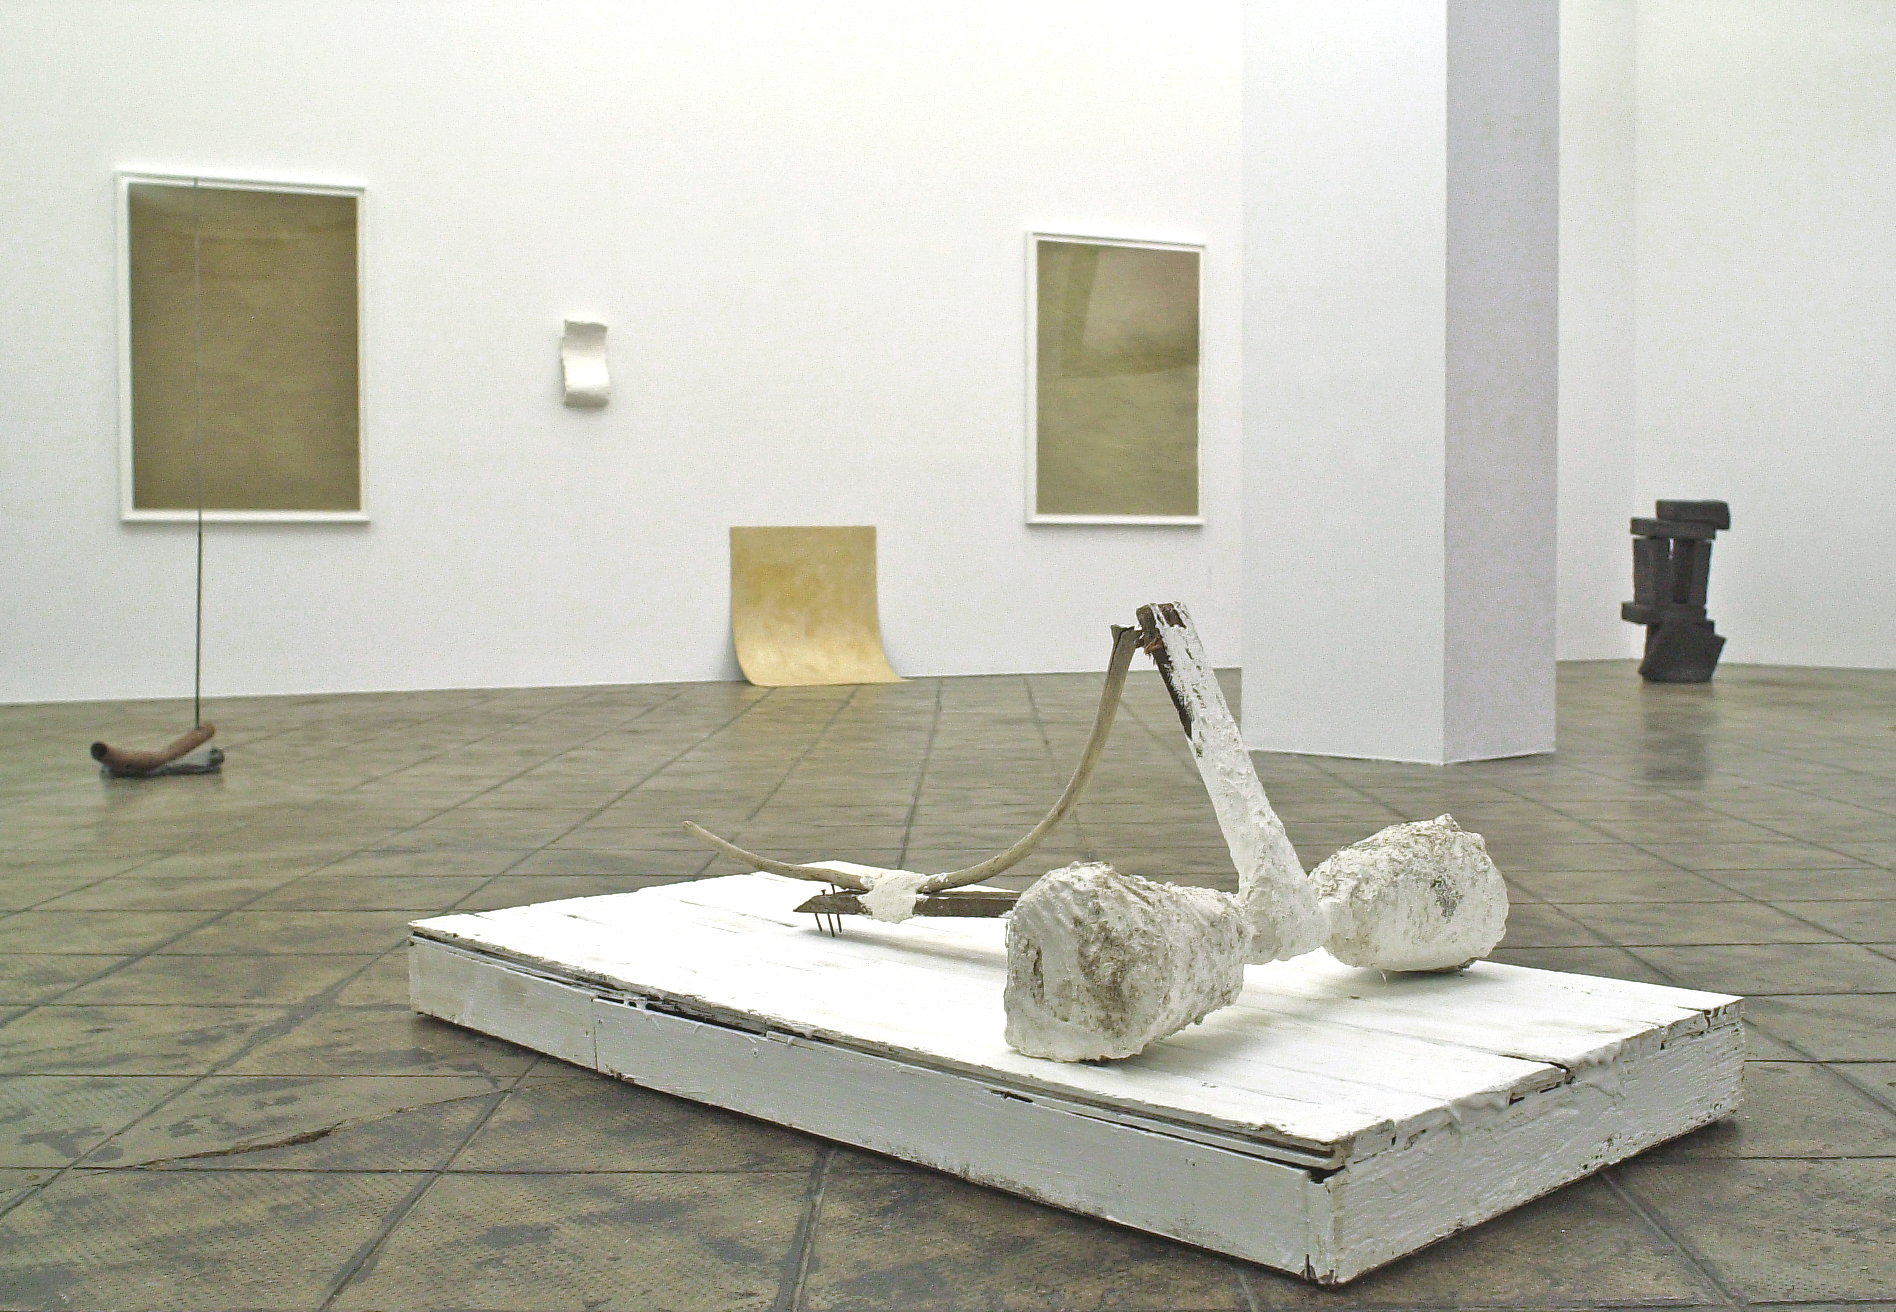 Installation view: Strange Form Of Life, ProjecteSD, Barcelona, 2010 |  | ProjecteSD